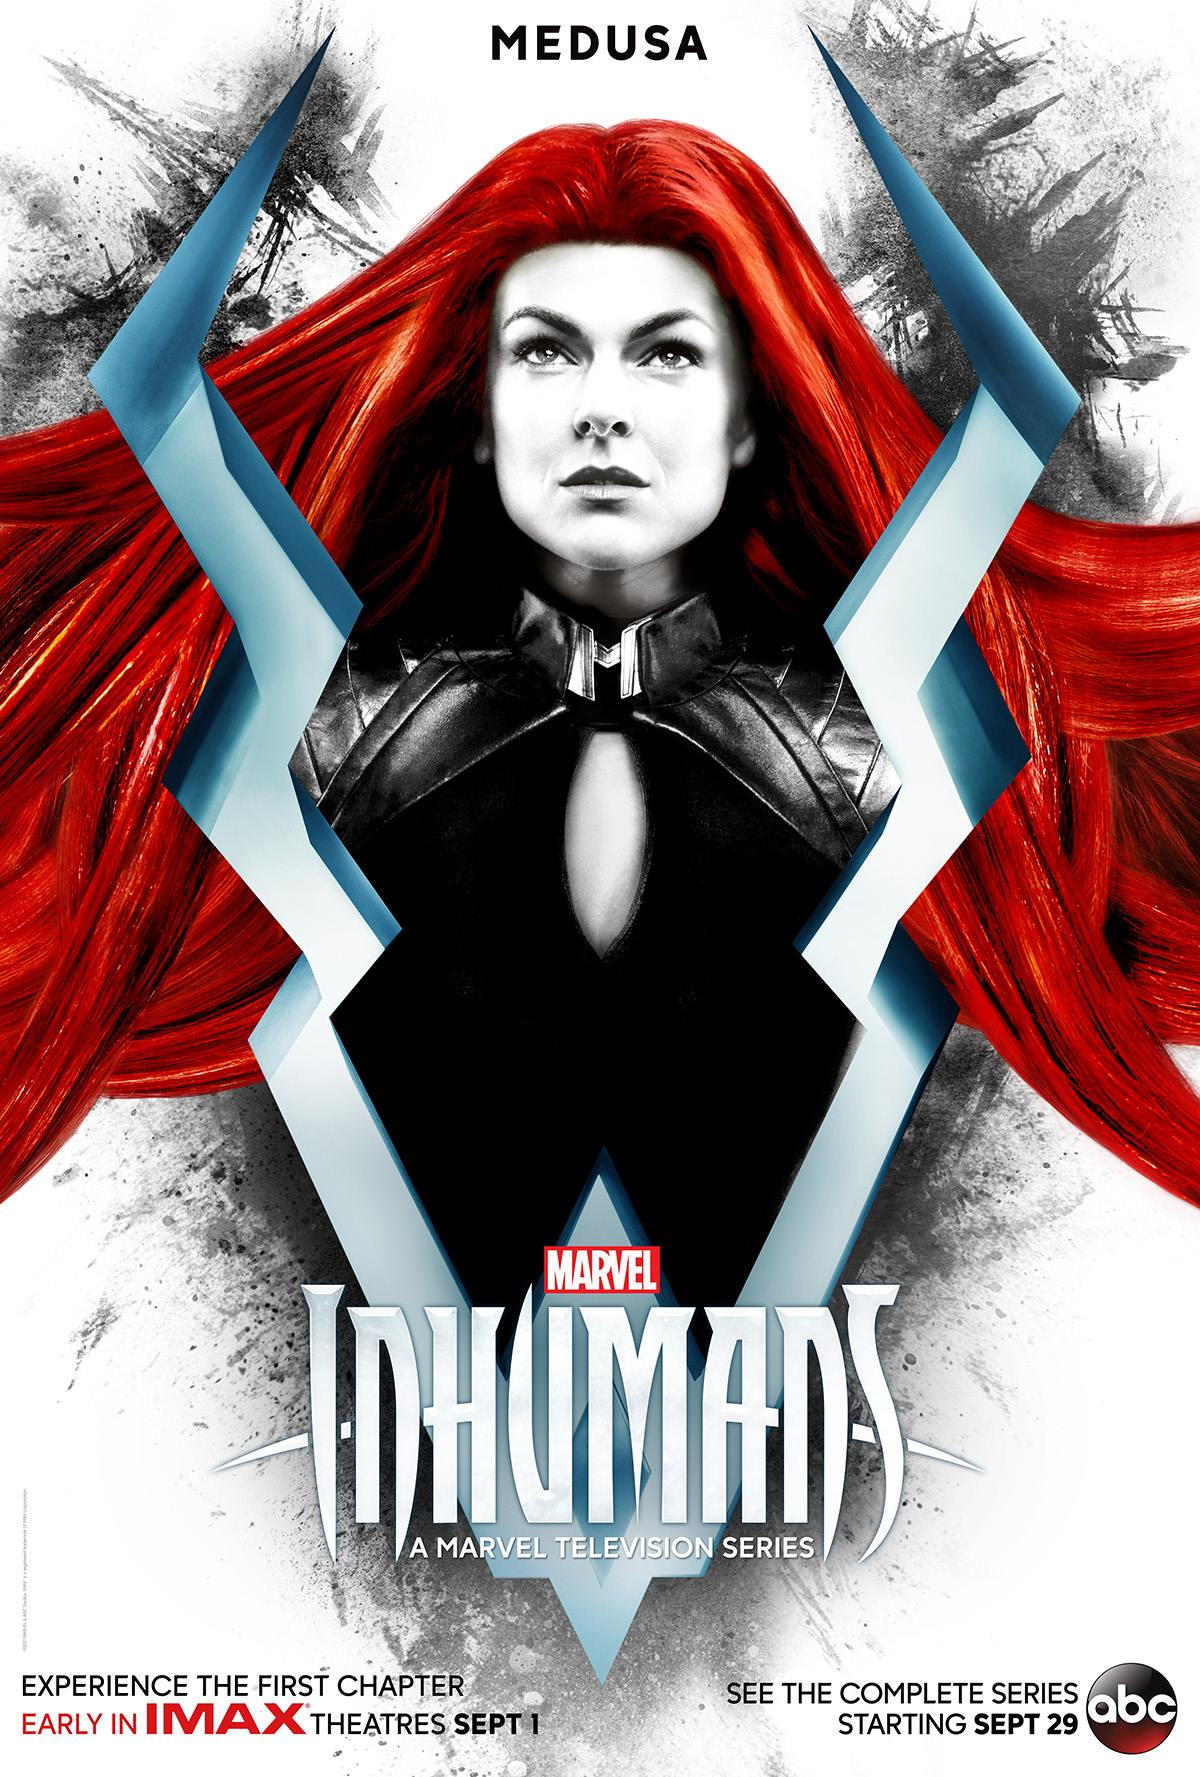 Three Character Posters For Inhumans Introduce Part Of Marvel's Royal Family